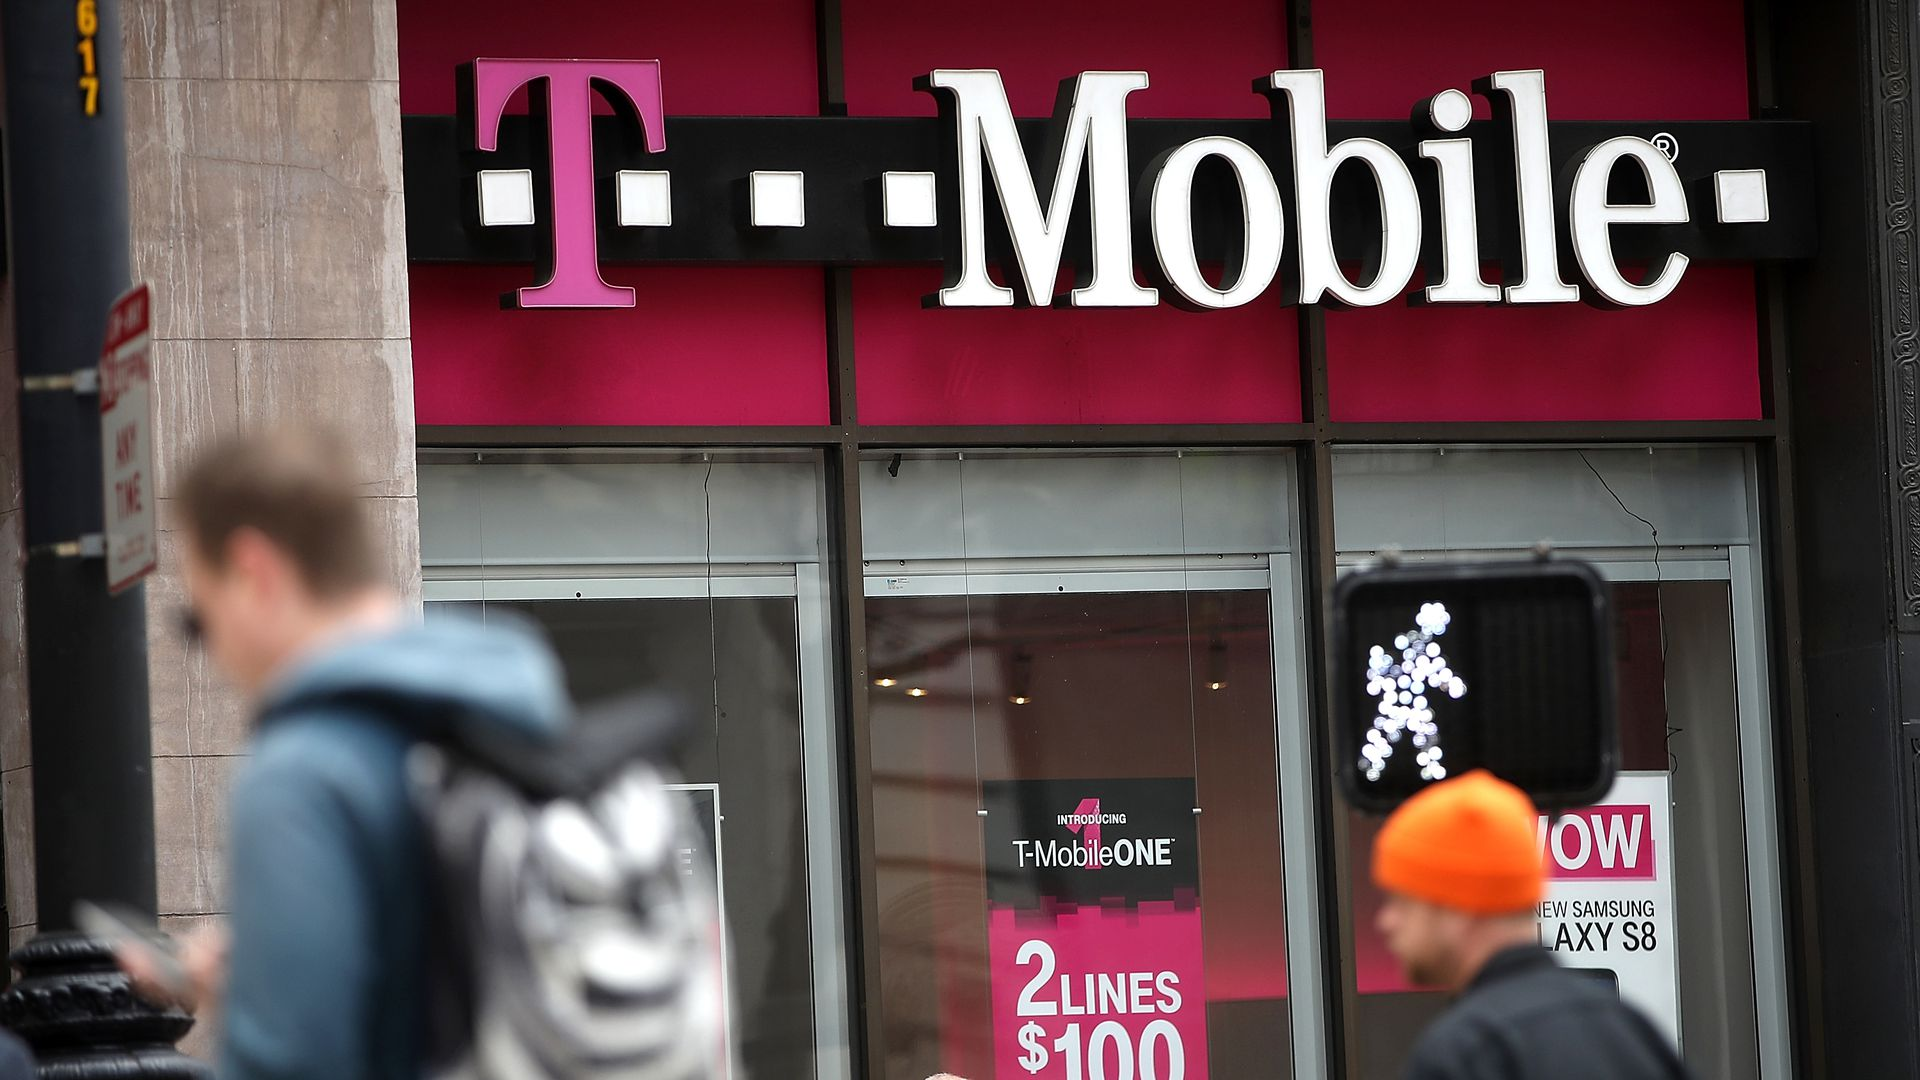 A San Francisco T-Mobile Store